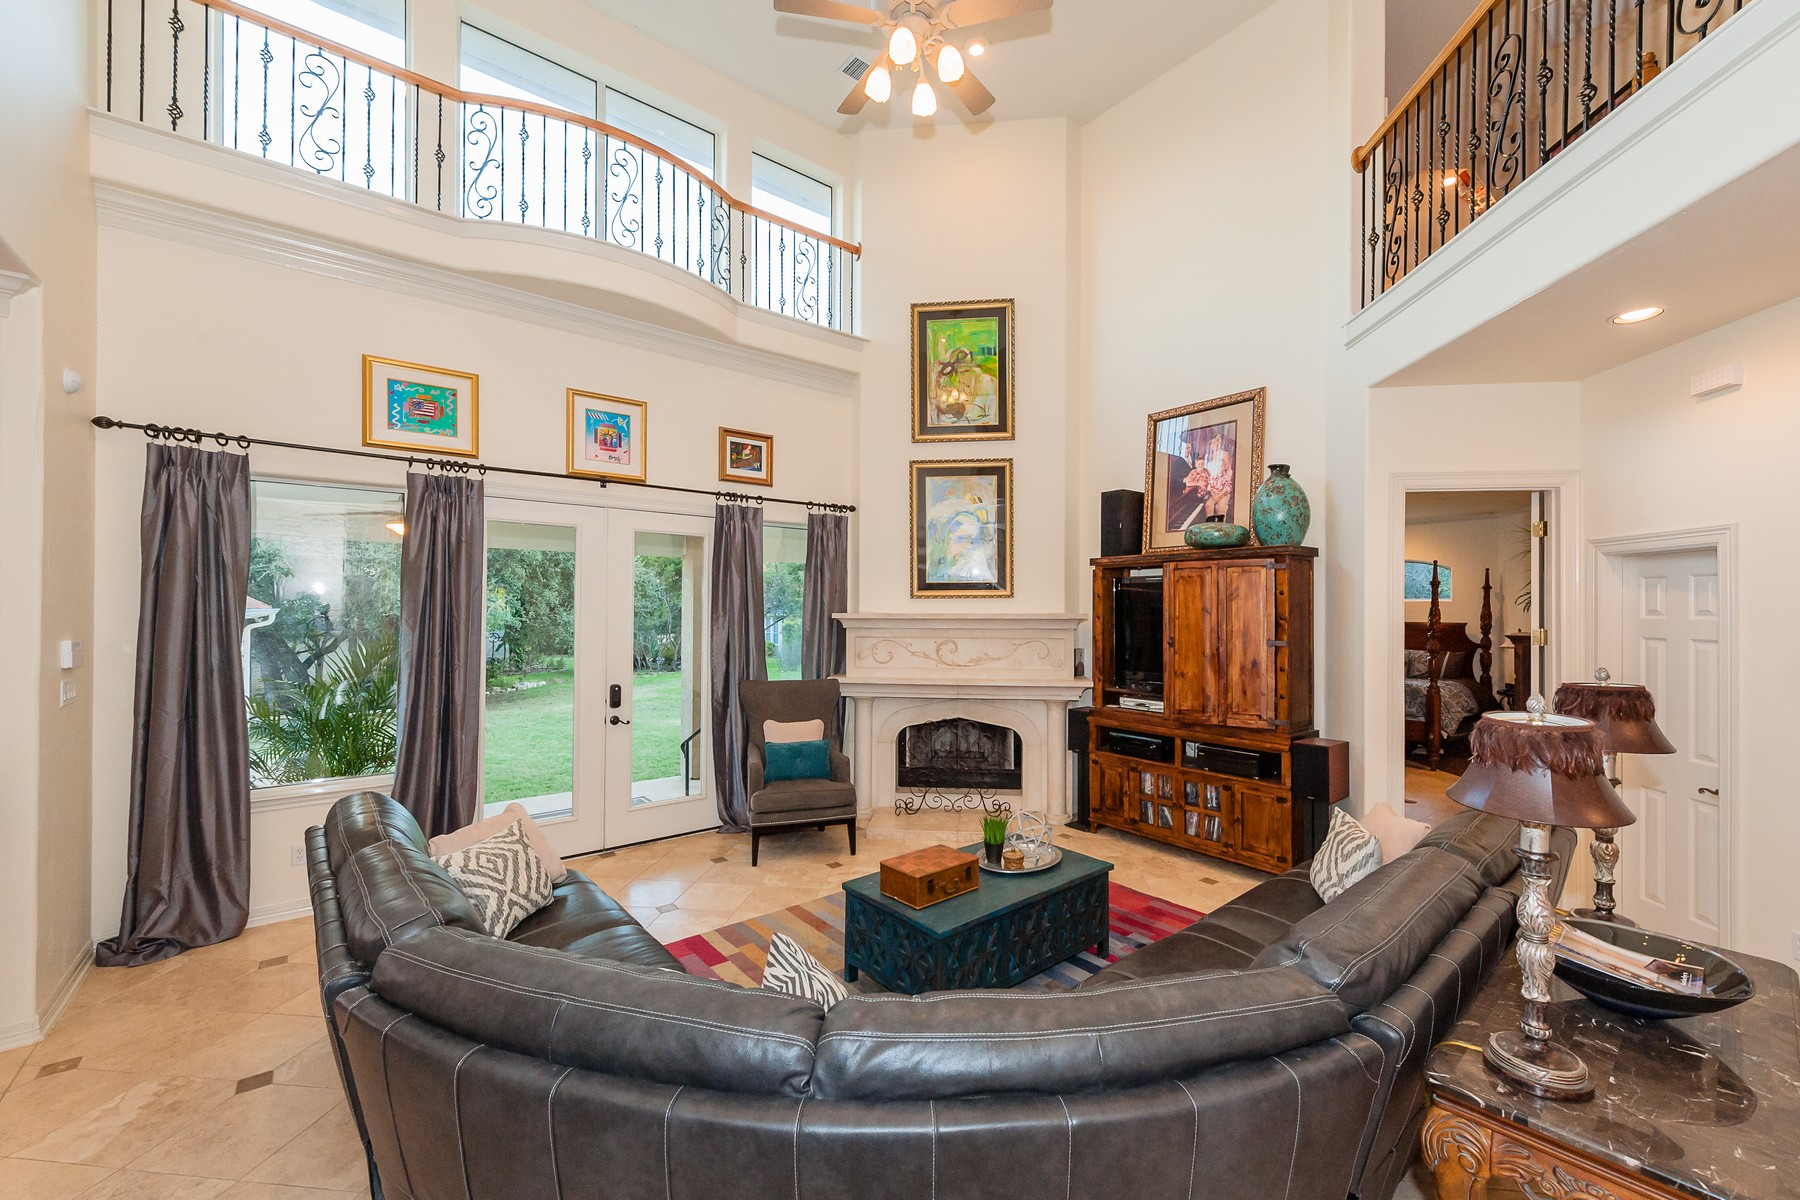 Additional photo for property listing at Abundant Living in Lakeway 926 Vanguard St Lakeway, Texas 78734 Estados Unidos